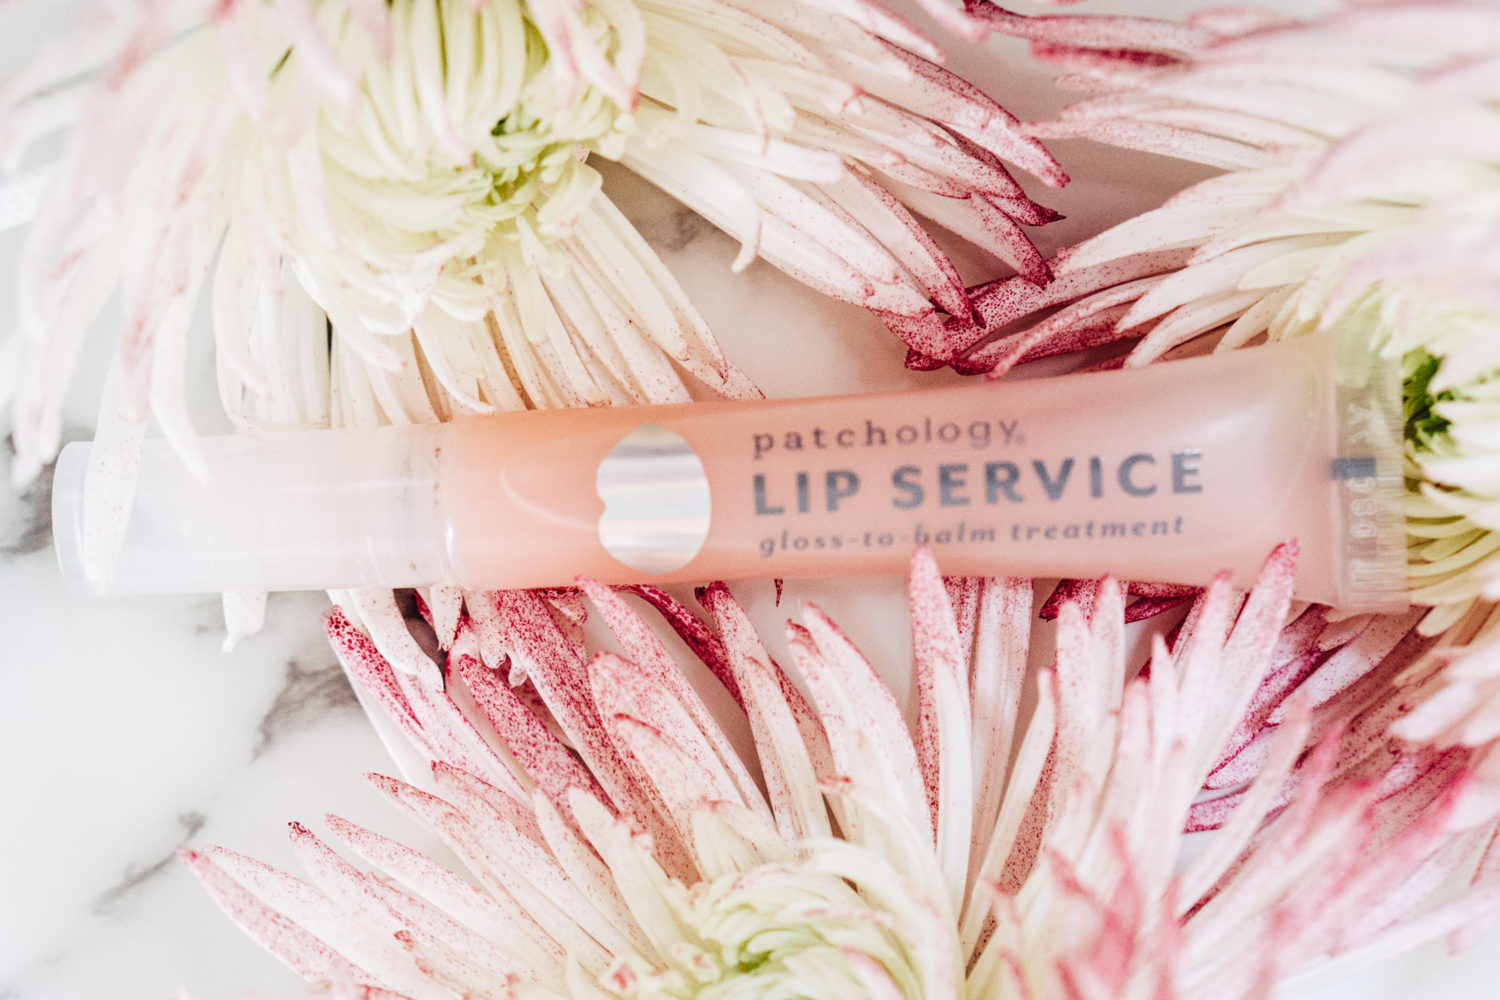 Patchology Lip Service Gloss-to-Balm Treatment review